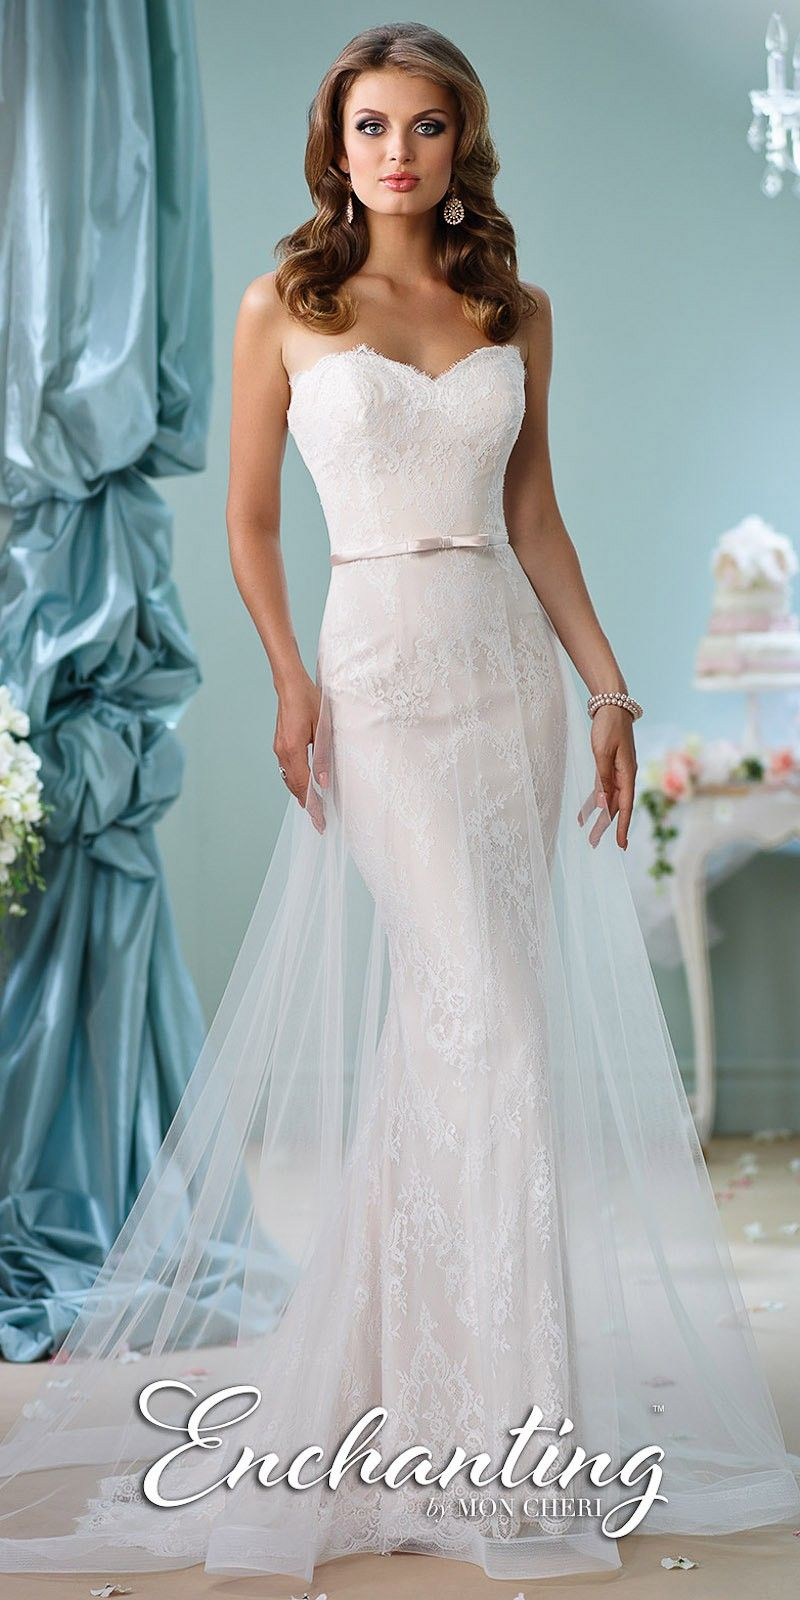 Strapless Bow Belted Wedding Gown by Mon Cheri Enchanting   Dress ...